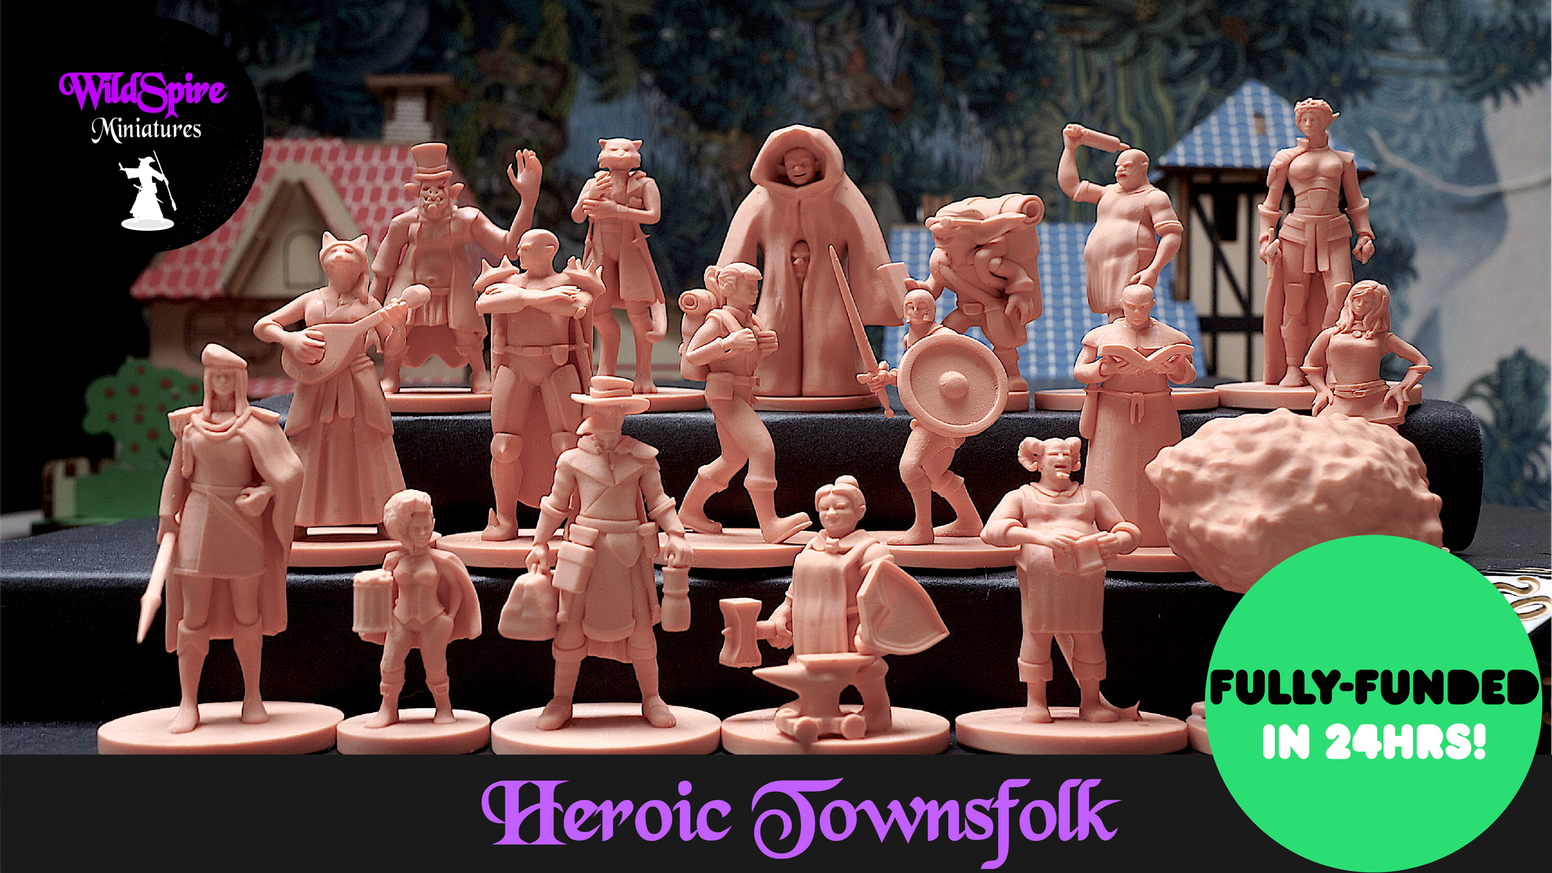 Set of 18 Unique Townsfolk Miniatures 28mm cast of high-quality plastic for DnD, Pathfinder & other Fantasy Tabletop Role Playing Games